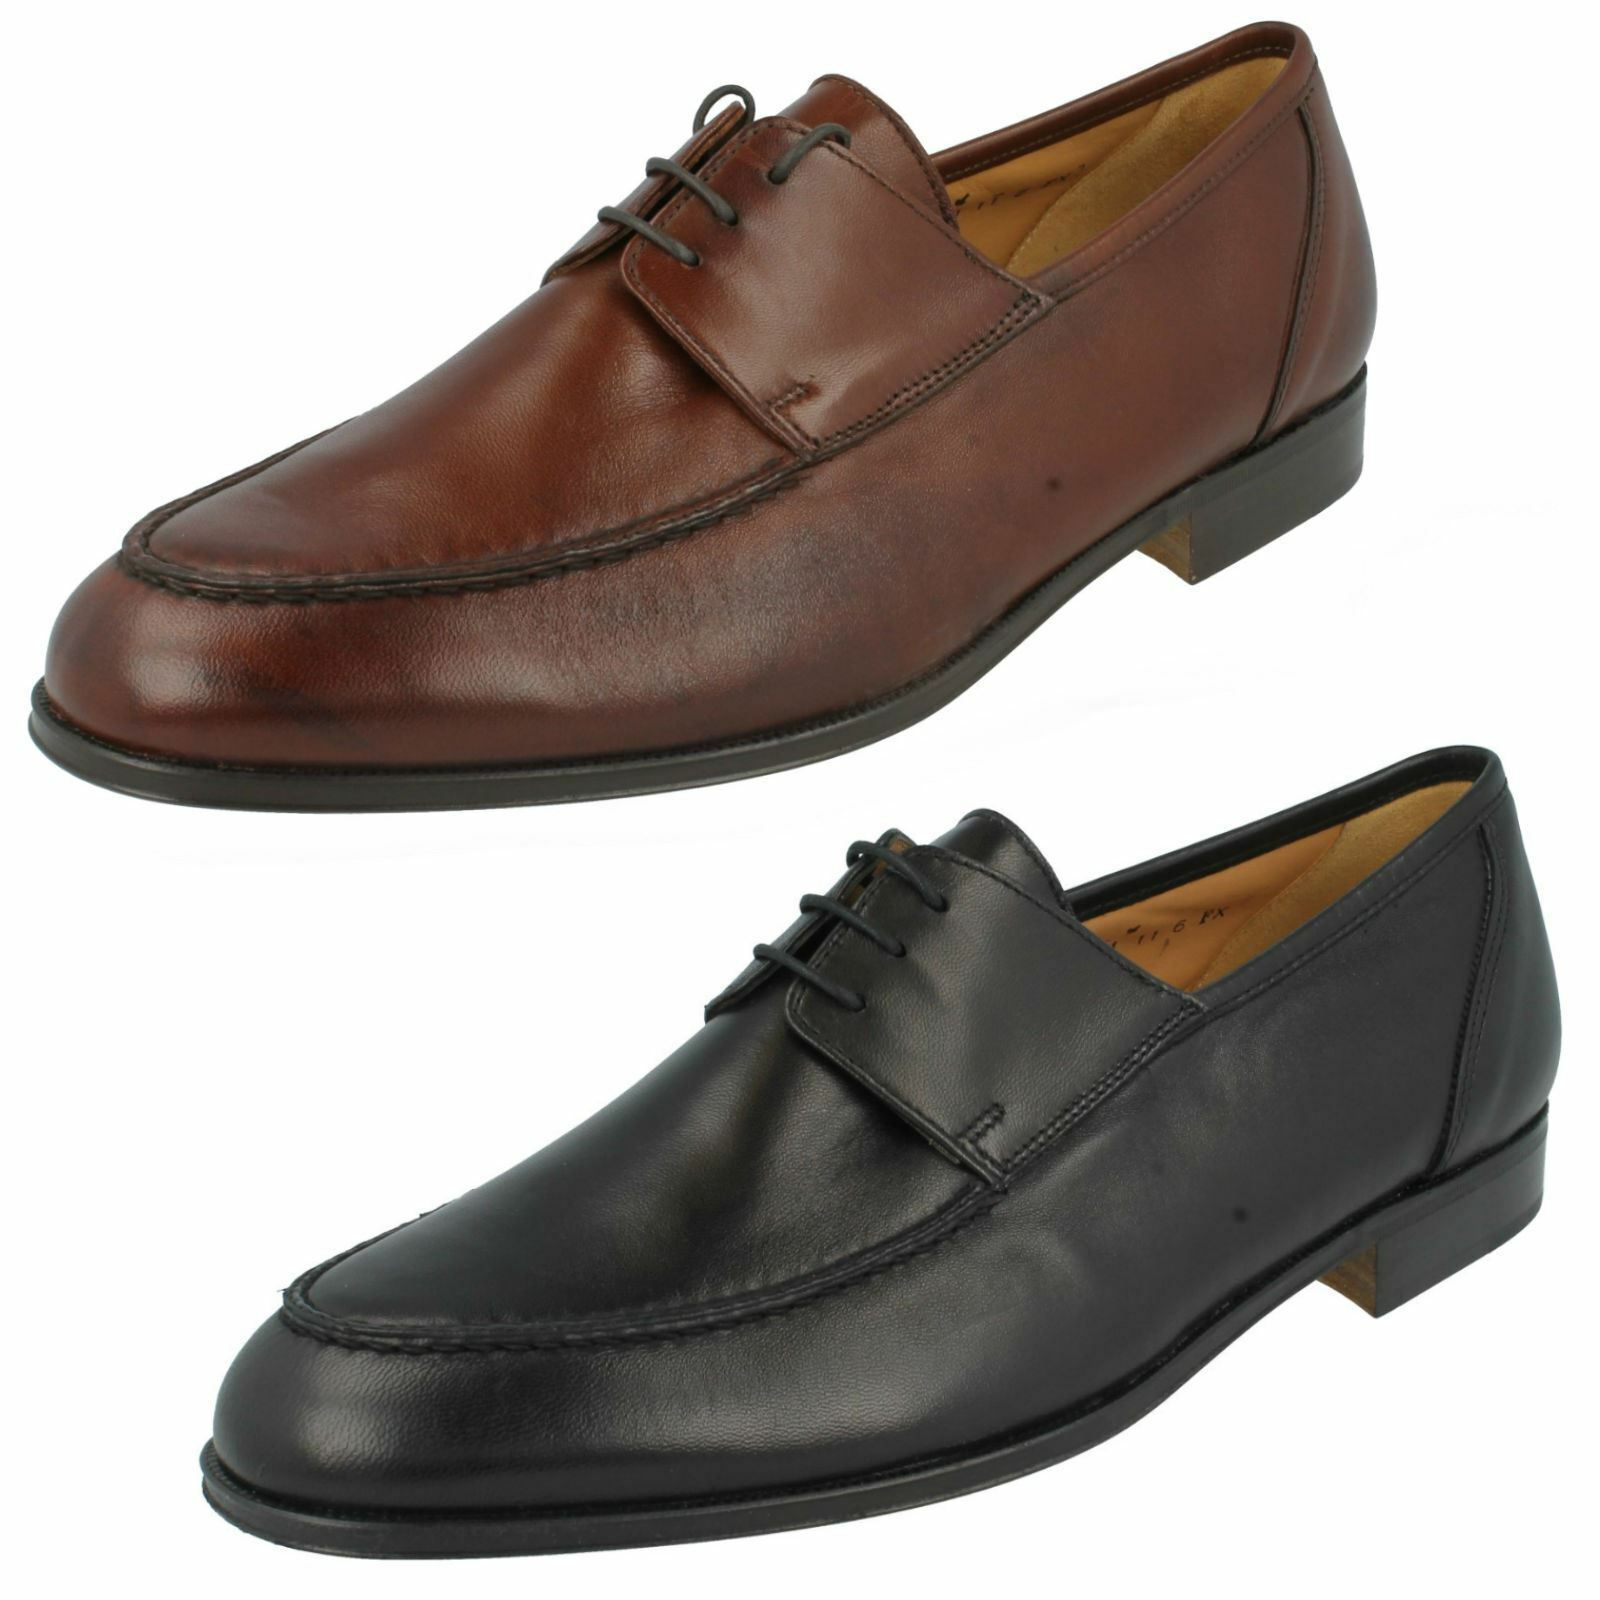 MENS GRENSON LEATHER LACE UP SMART FORMAL SHOES VERONA  FITTING FX